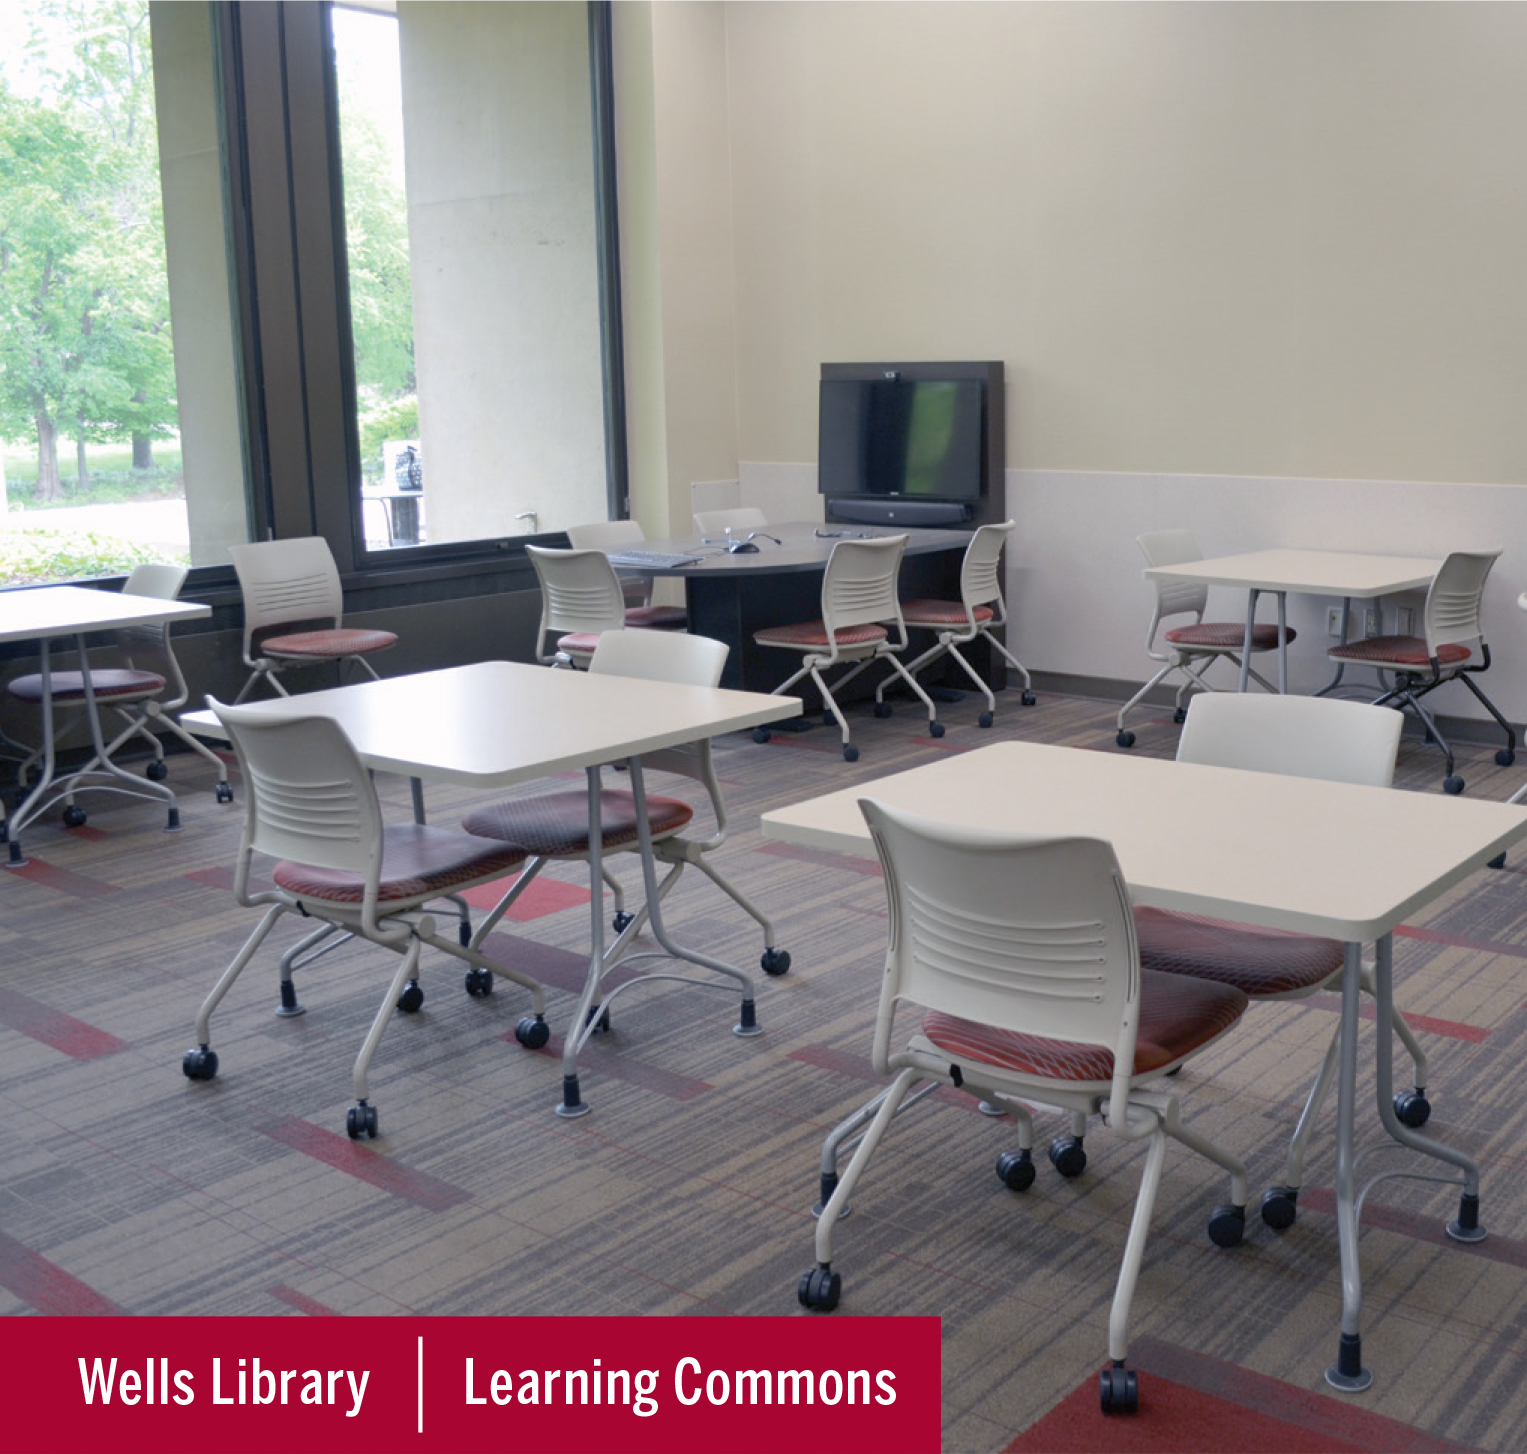 Image of the Writing Tutorial Room at Wells Library